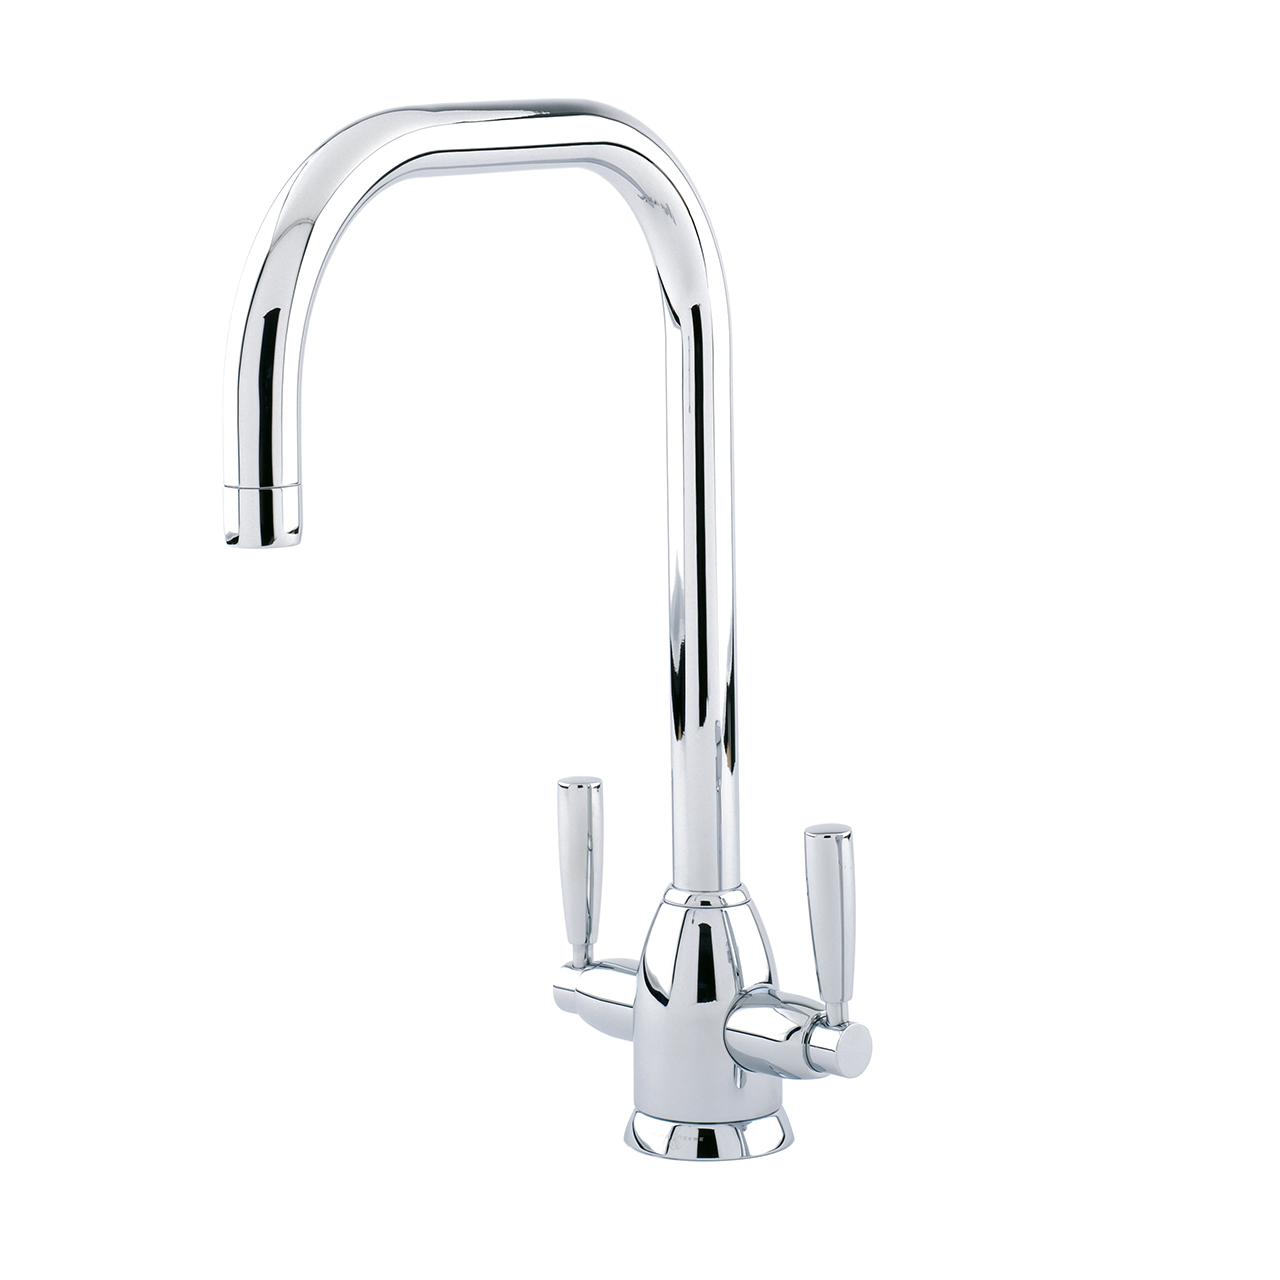 4863 Perrin & Rowe Oberon Monobloc Sink Mixer Tap U Spout with Lever ...